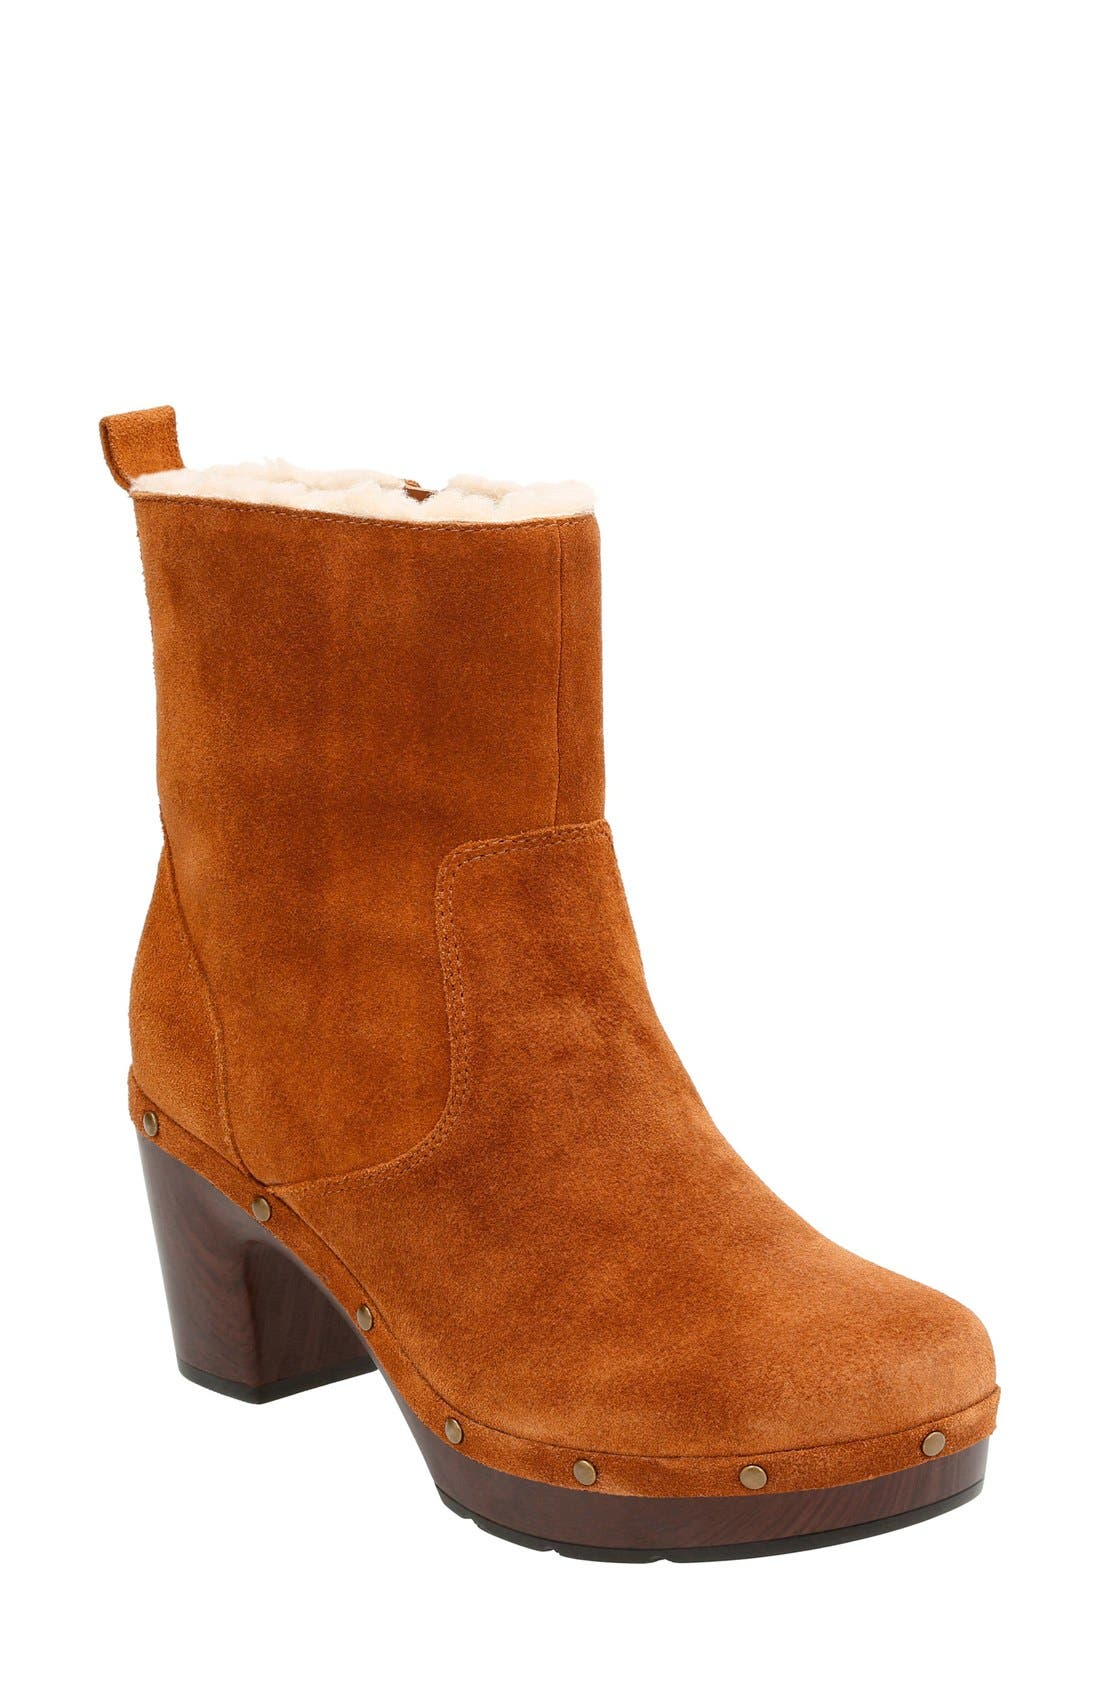 'Ledella Abby' Bootie,                         Main,                         color, Tan Suede